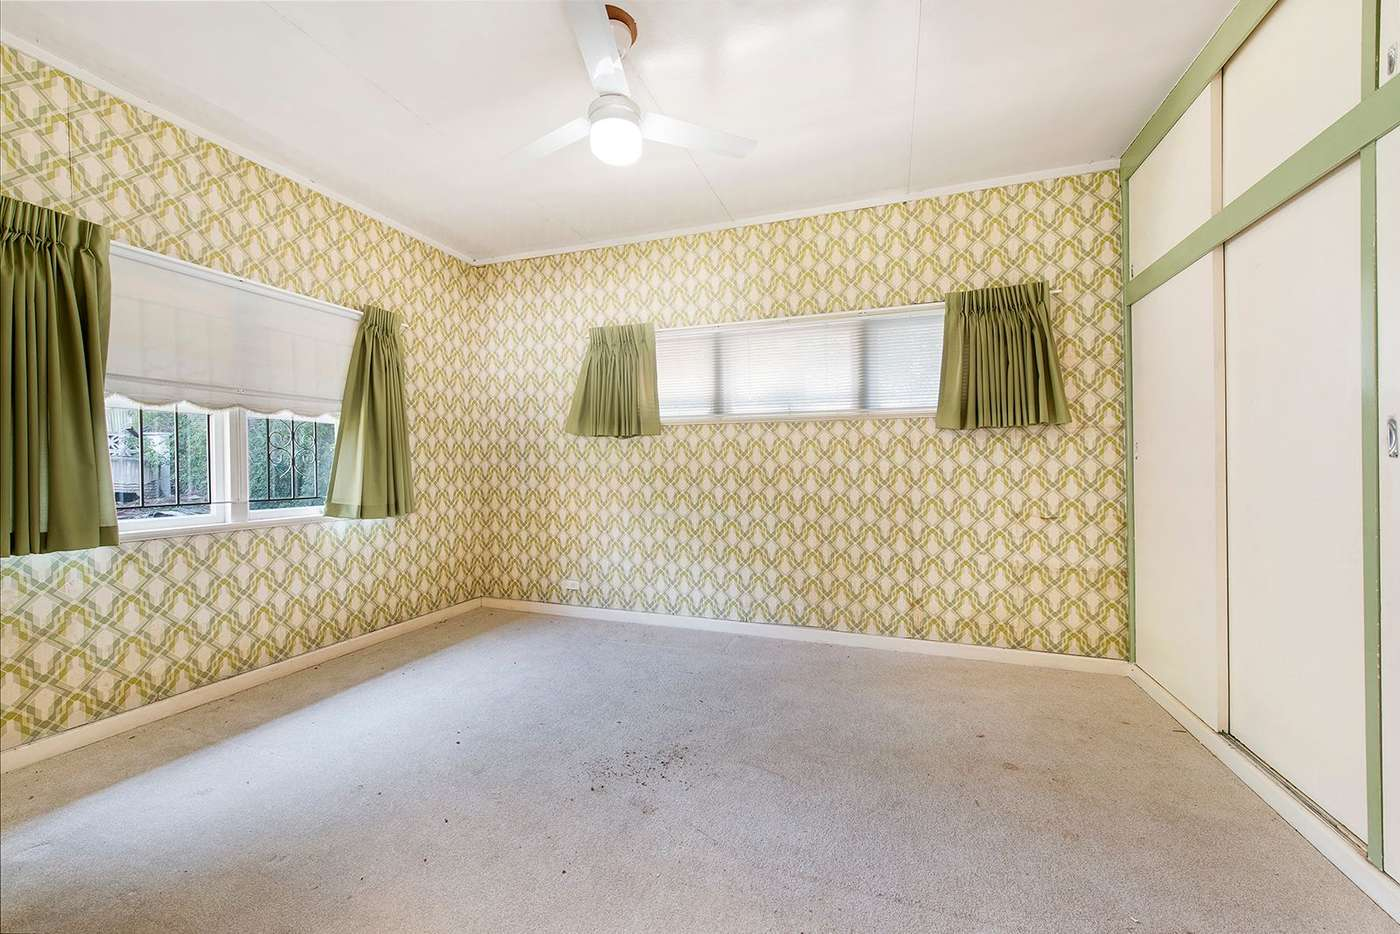 Sixth view of Homely house listing, 16 Colton Avenue, Lutwyche QLD 4030